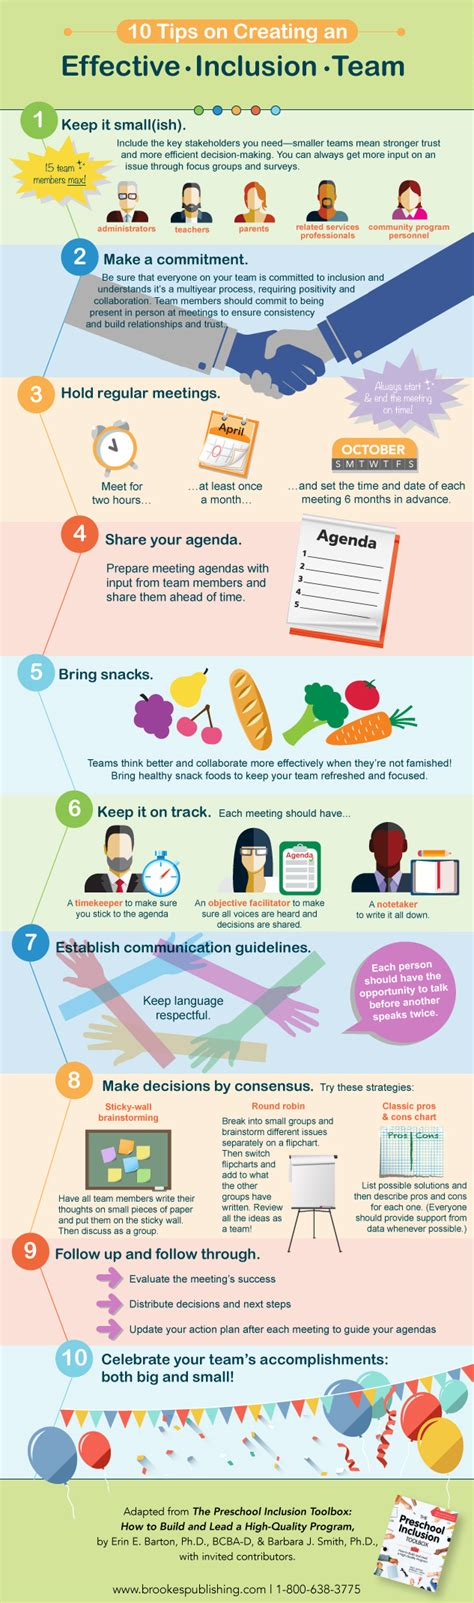 education tips infographic 10 tips on creating an effective inclusion